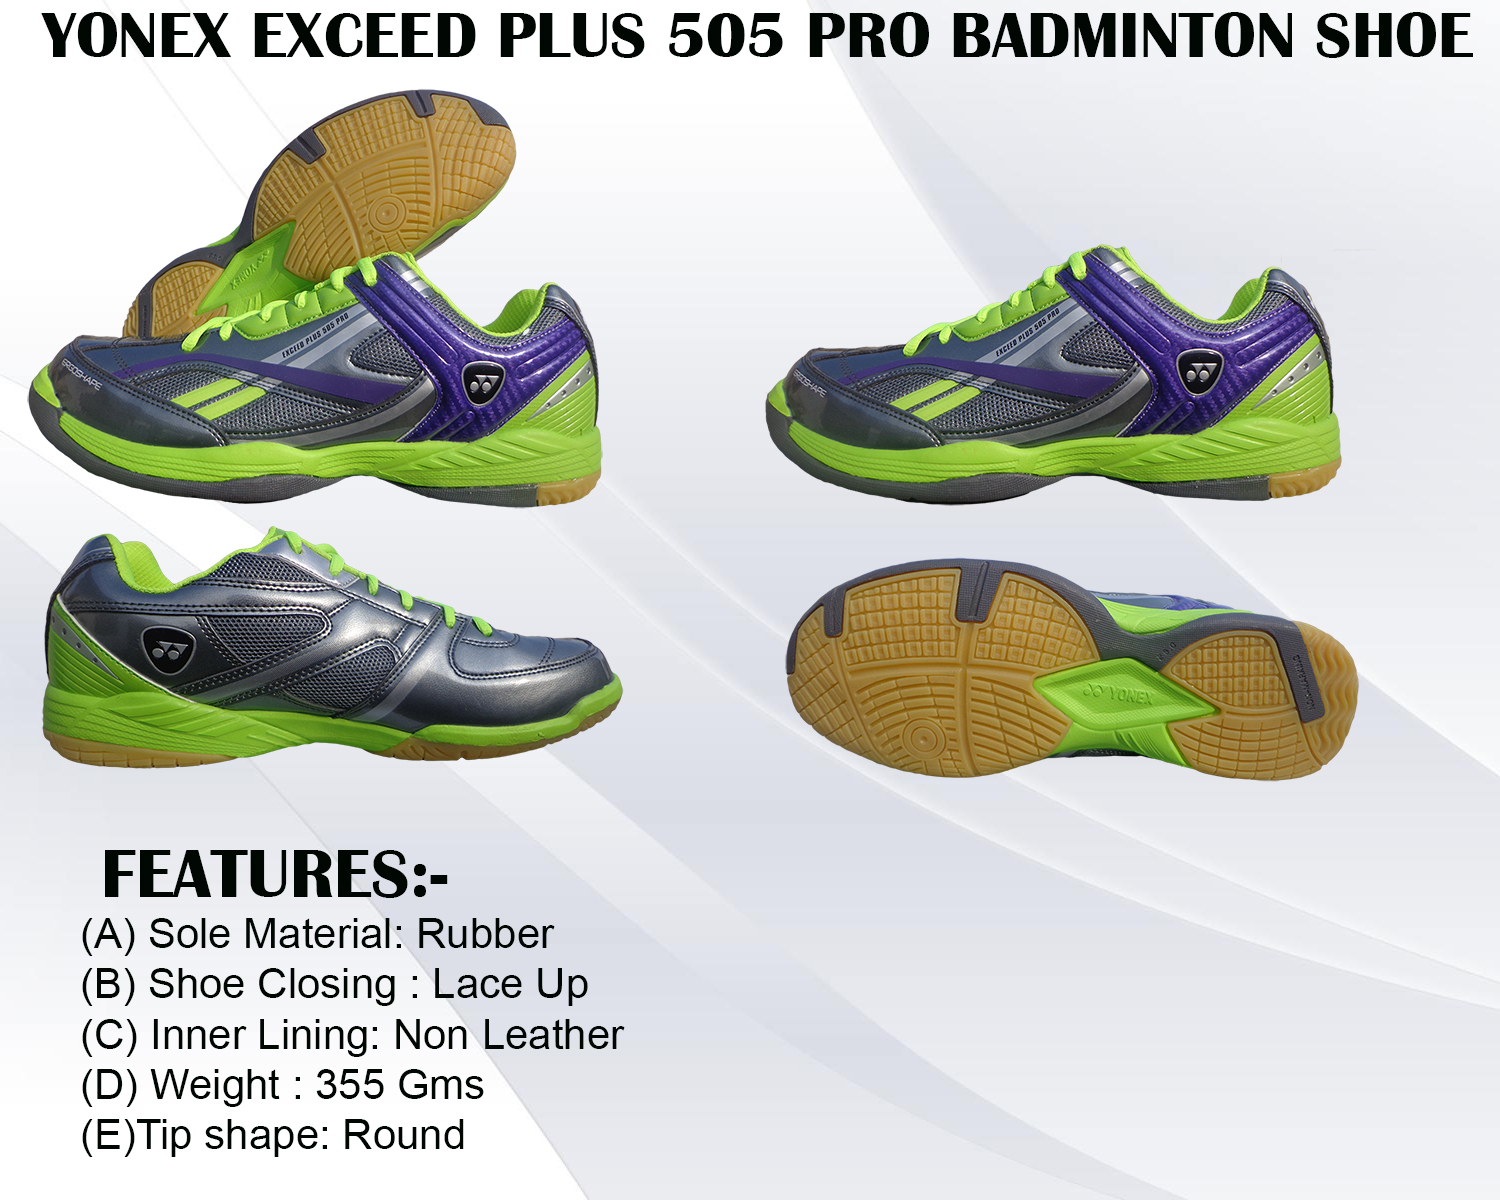 Yonex Exceed Plus 505 Pro Green Badminton Shoe Green and Grey